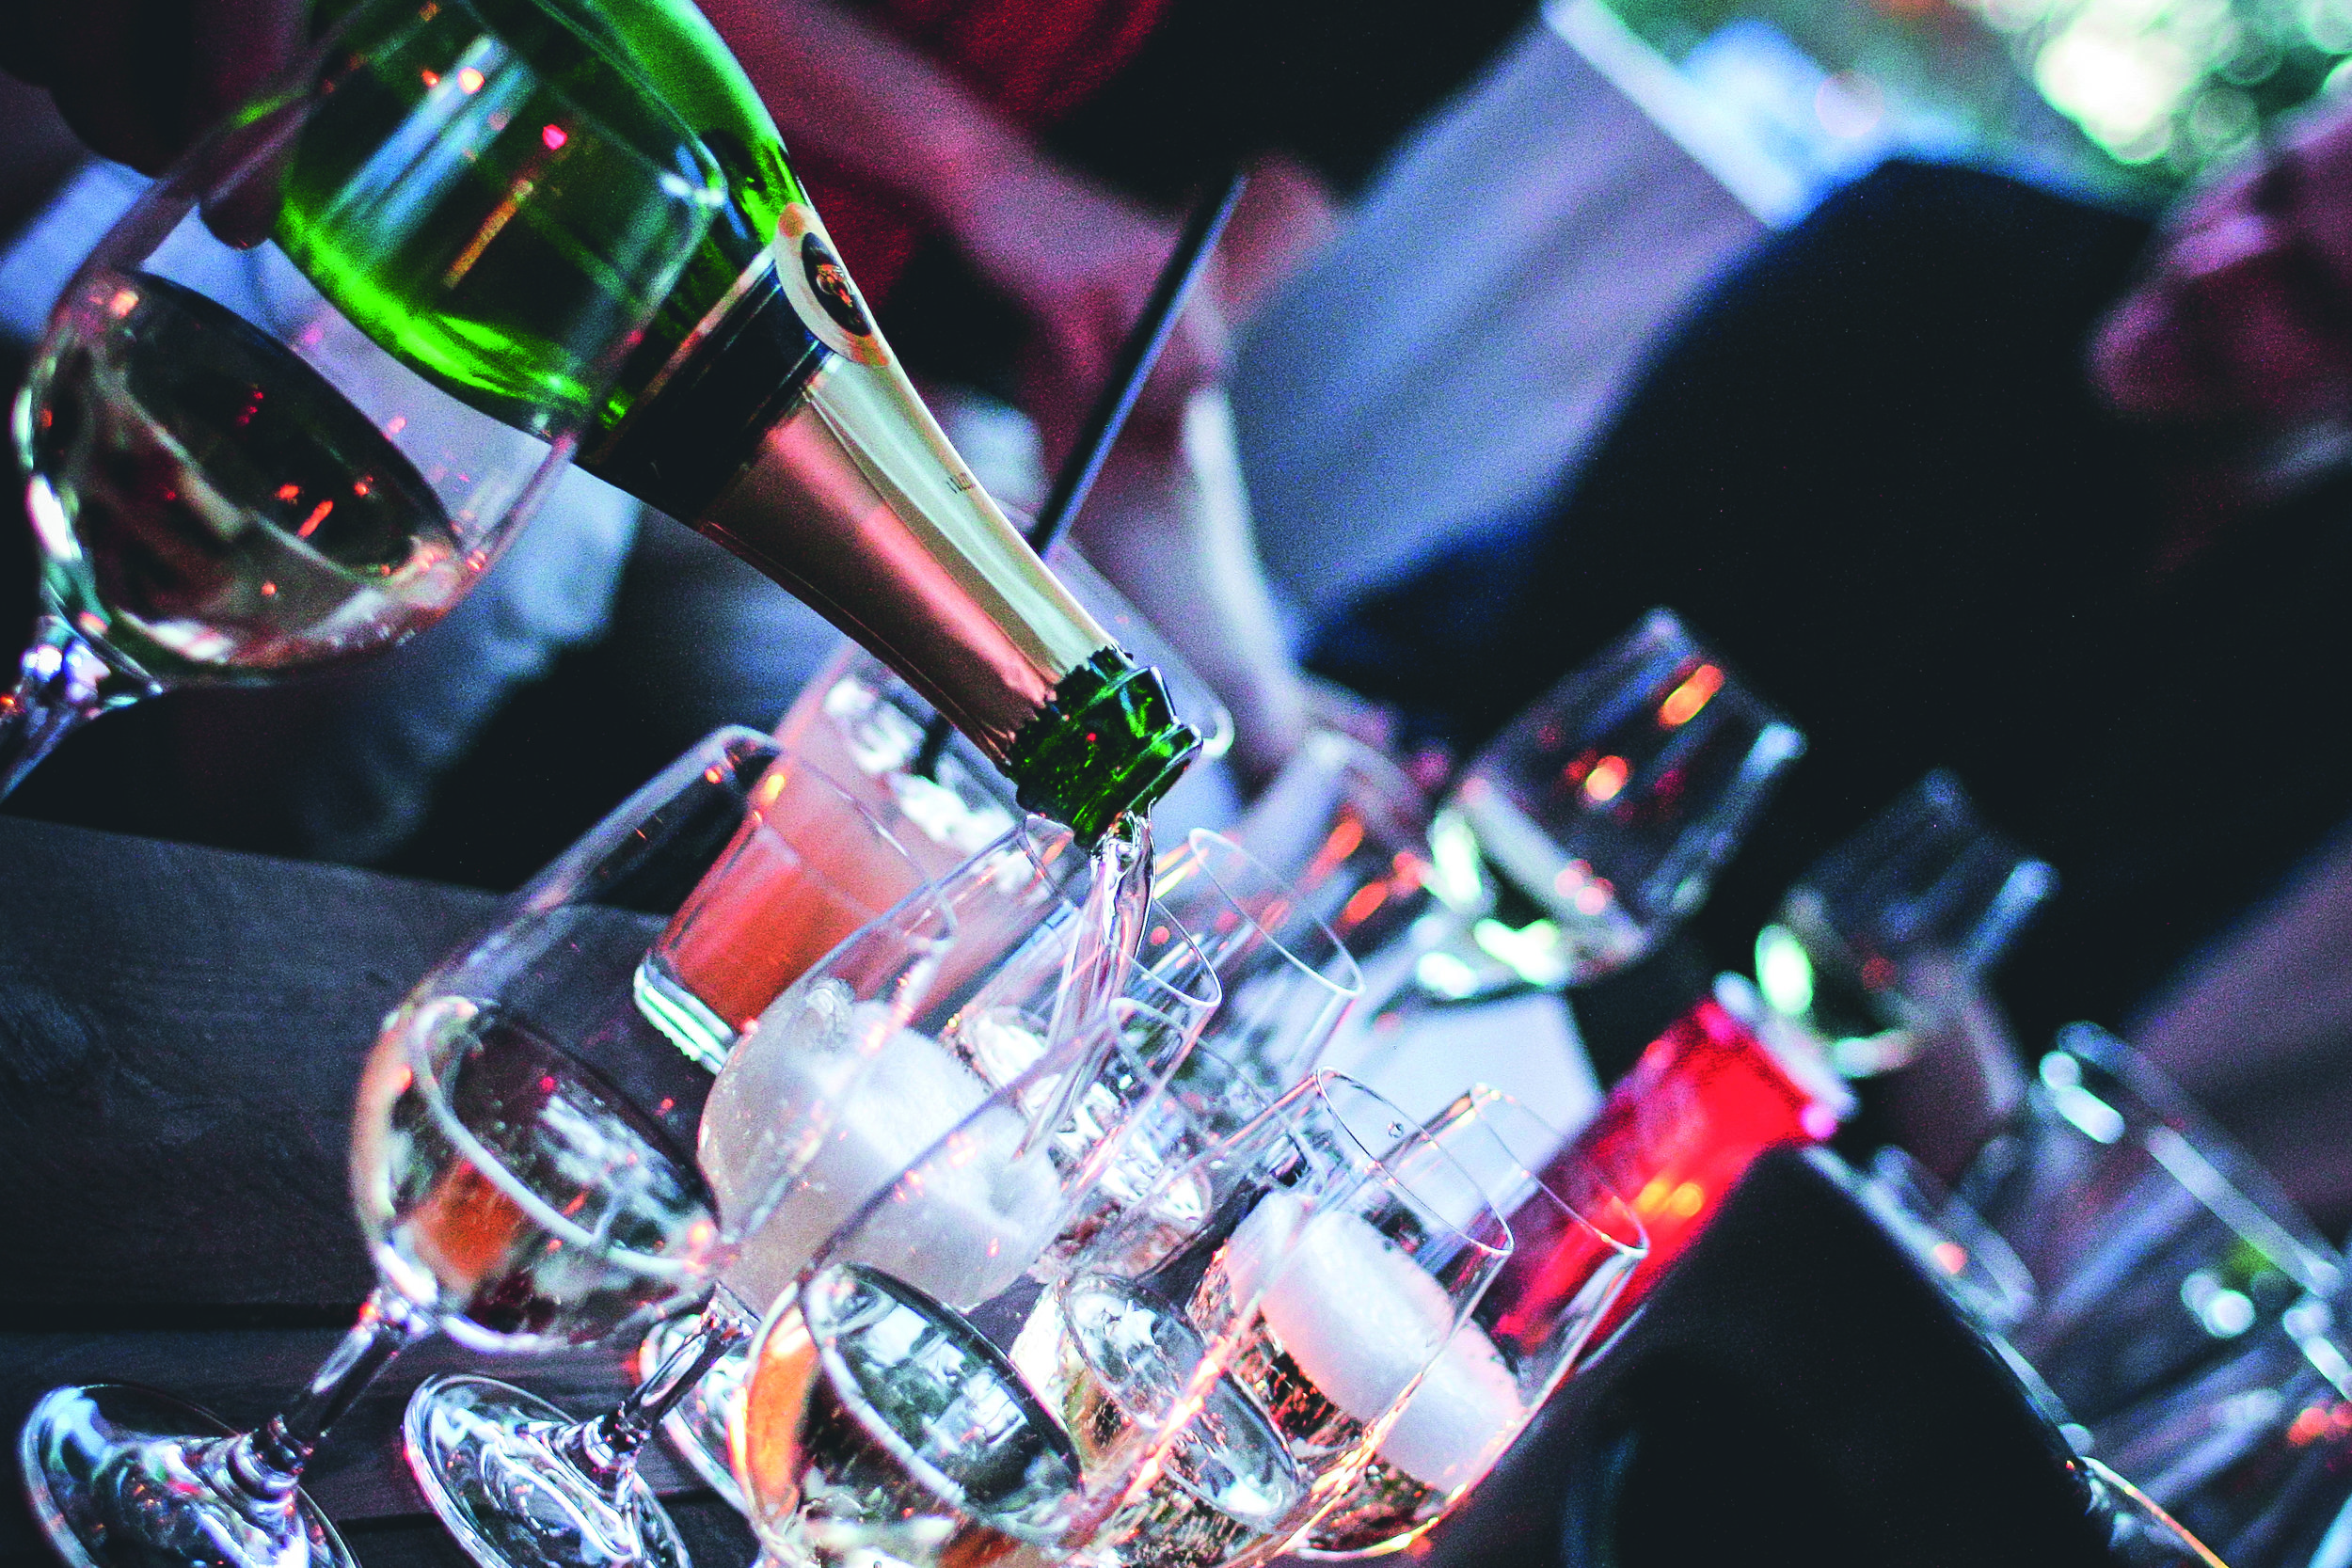 pouring-a-bottle-of-champagne-picjumbo-com.jpg